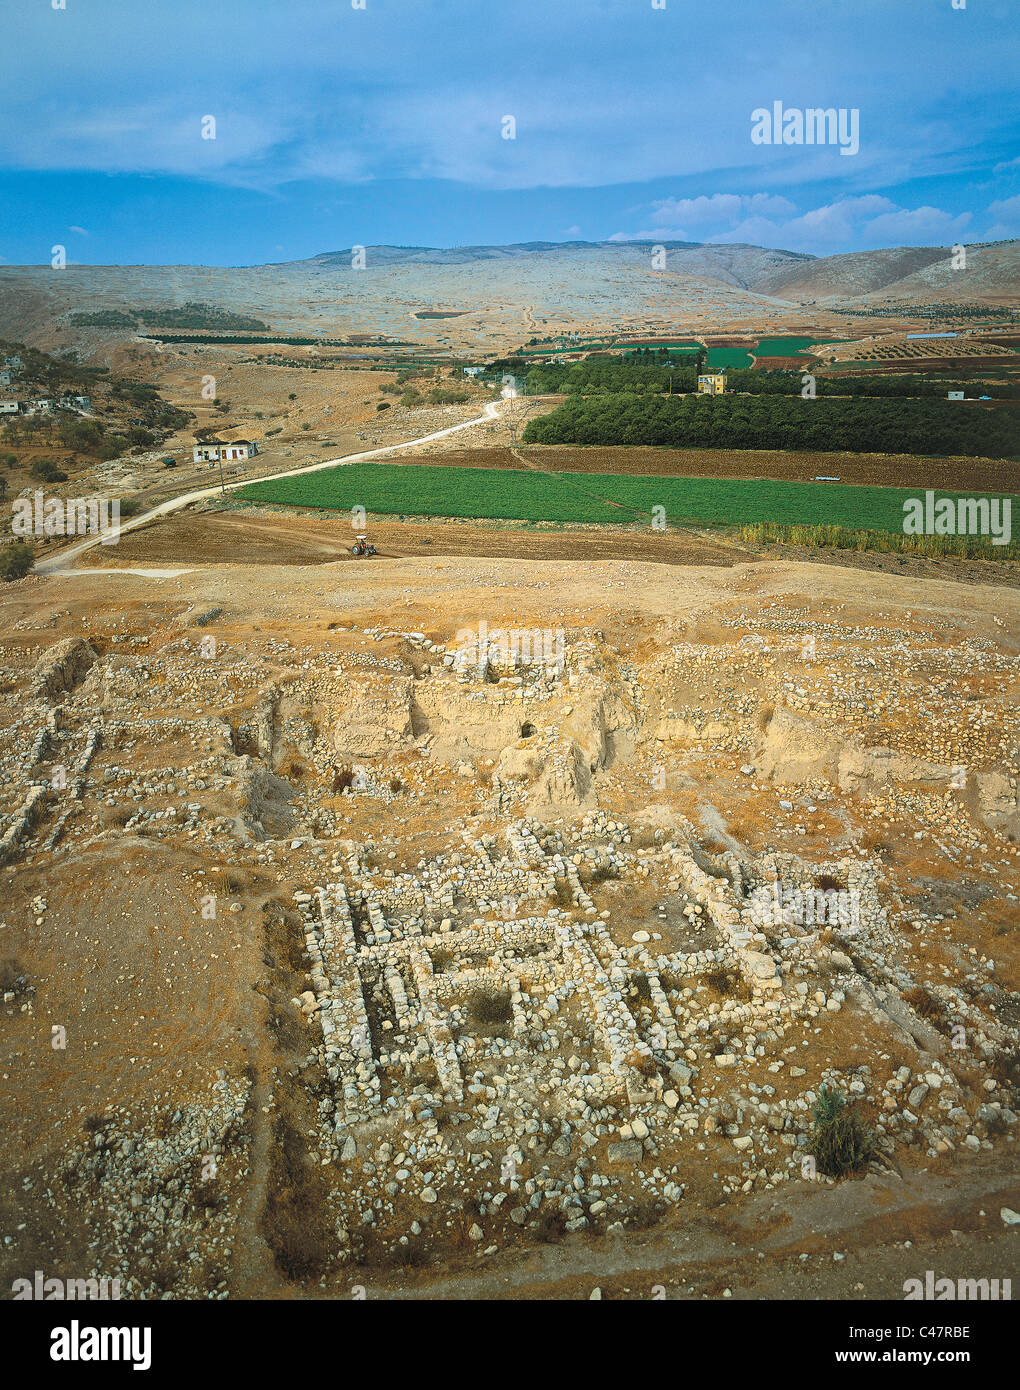 Aerial view of the biblical city of Tirzah - Stock Image